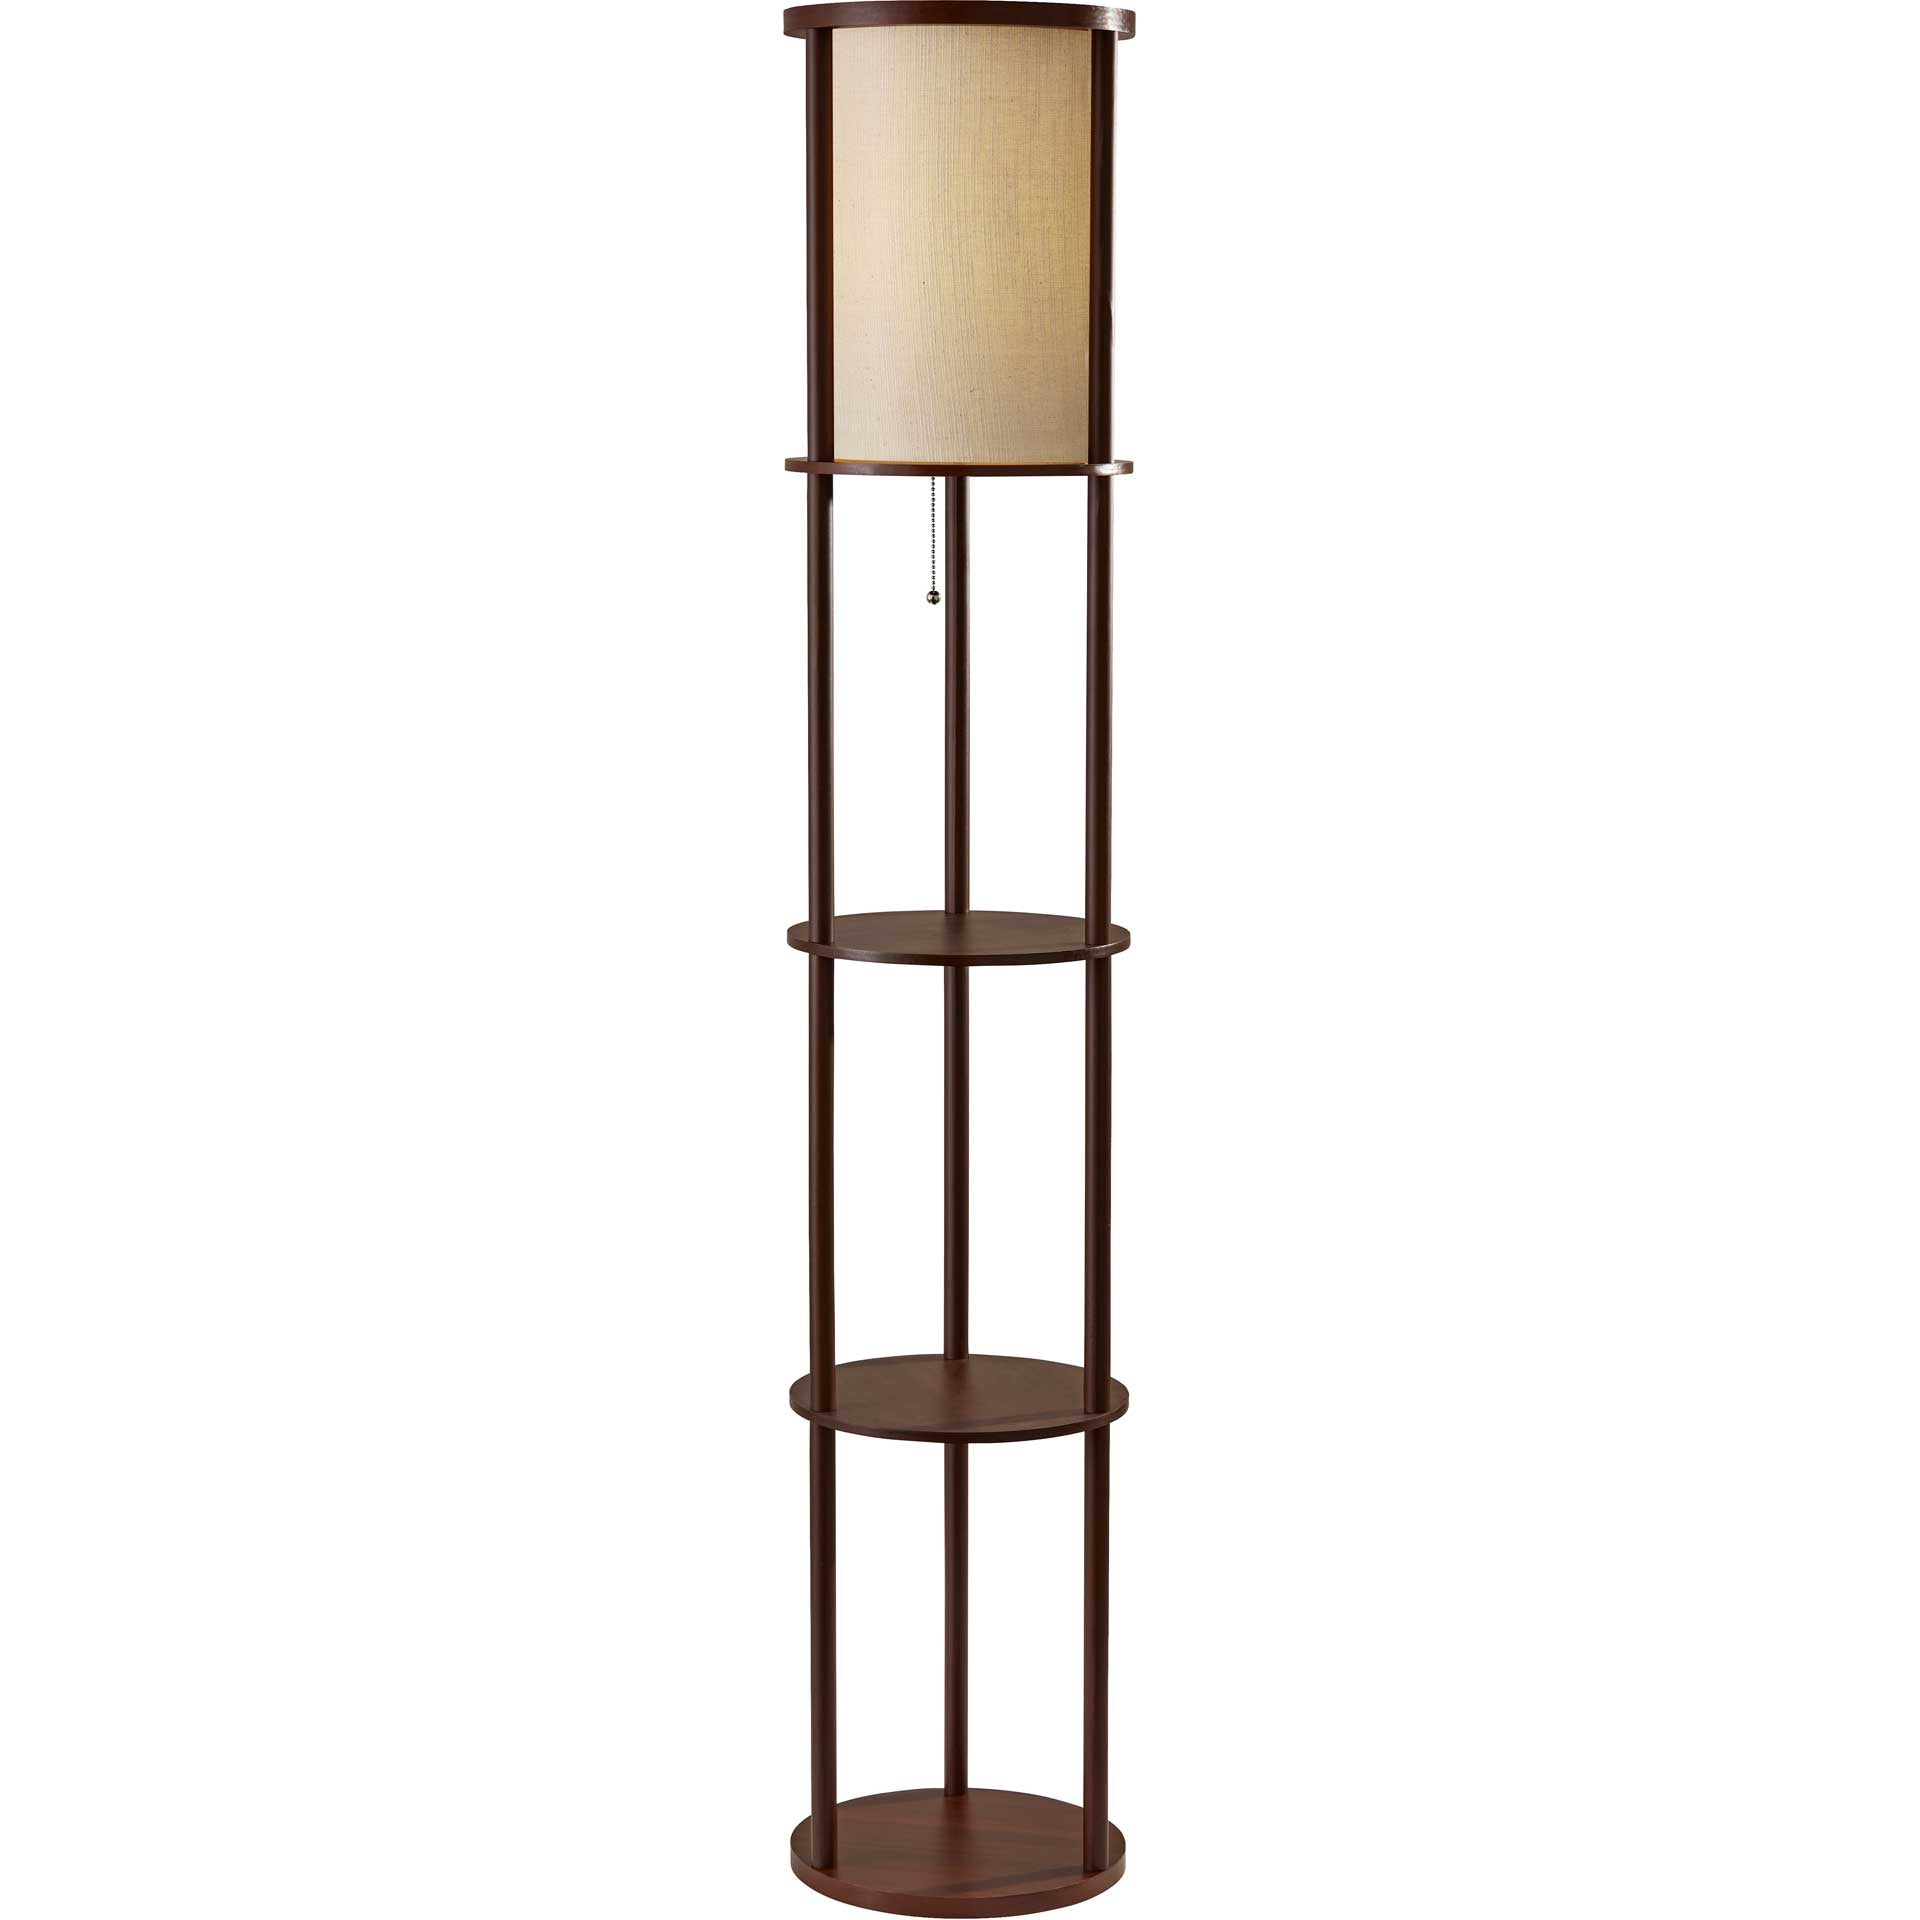 Stavanger Round Shelf Floor Lamp Walnut/Brown